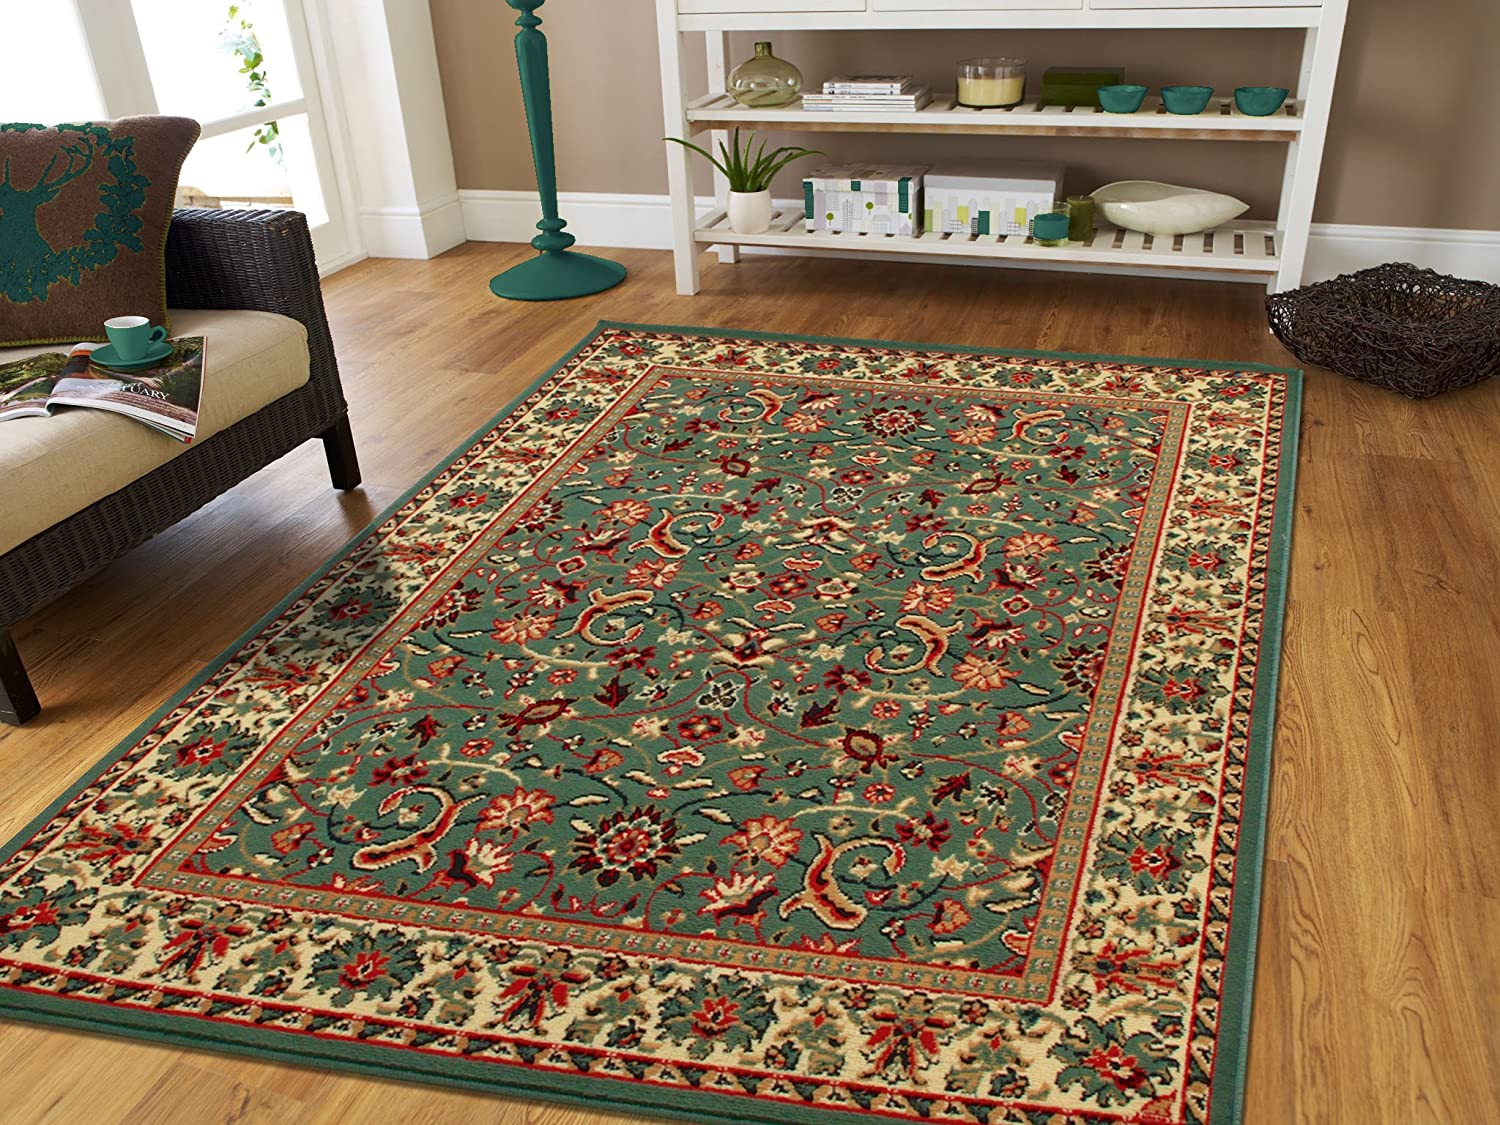 Amazon Com Persian Rugs For Living Room 5x8 Green Area Rug Greens